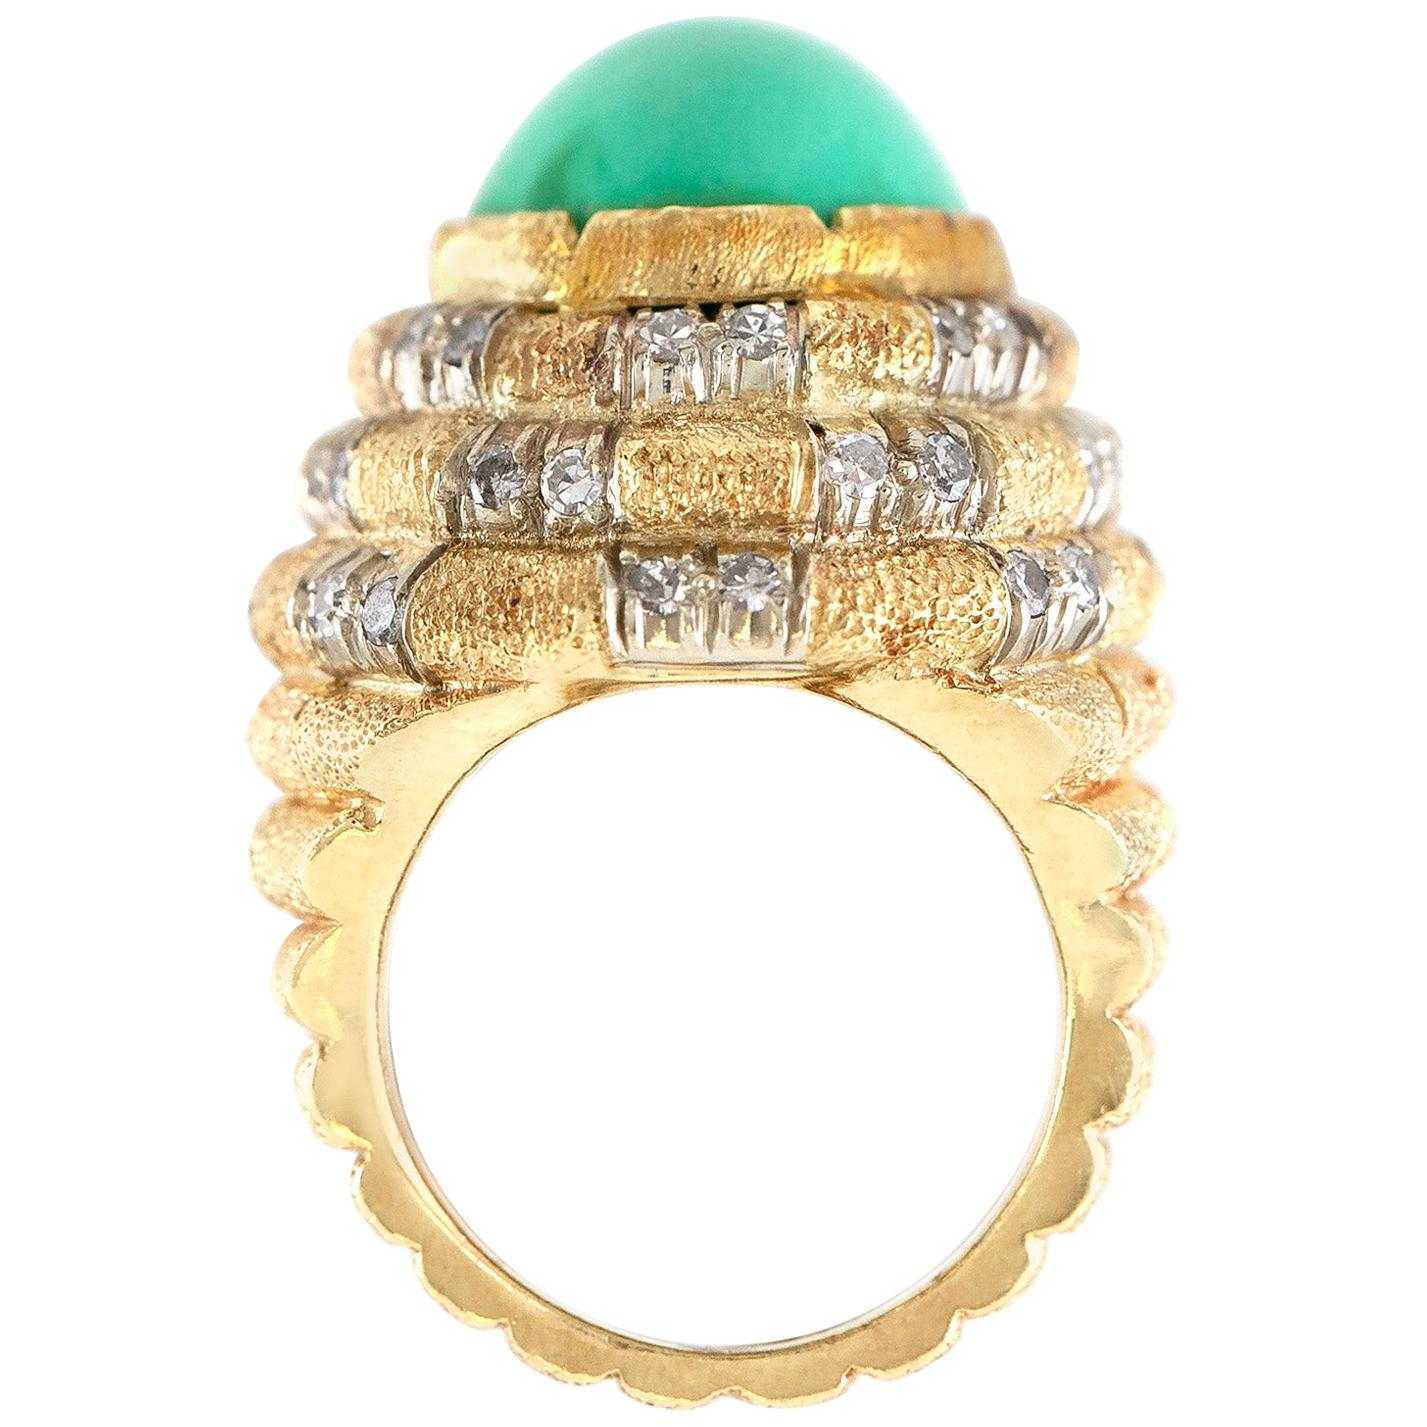 Turquoise Gold Cocktail Ring